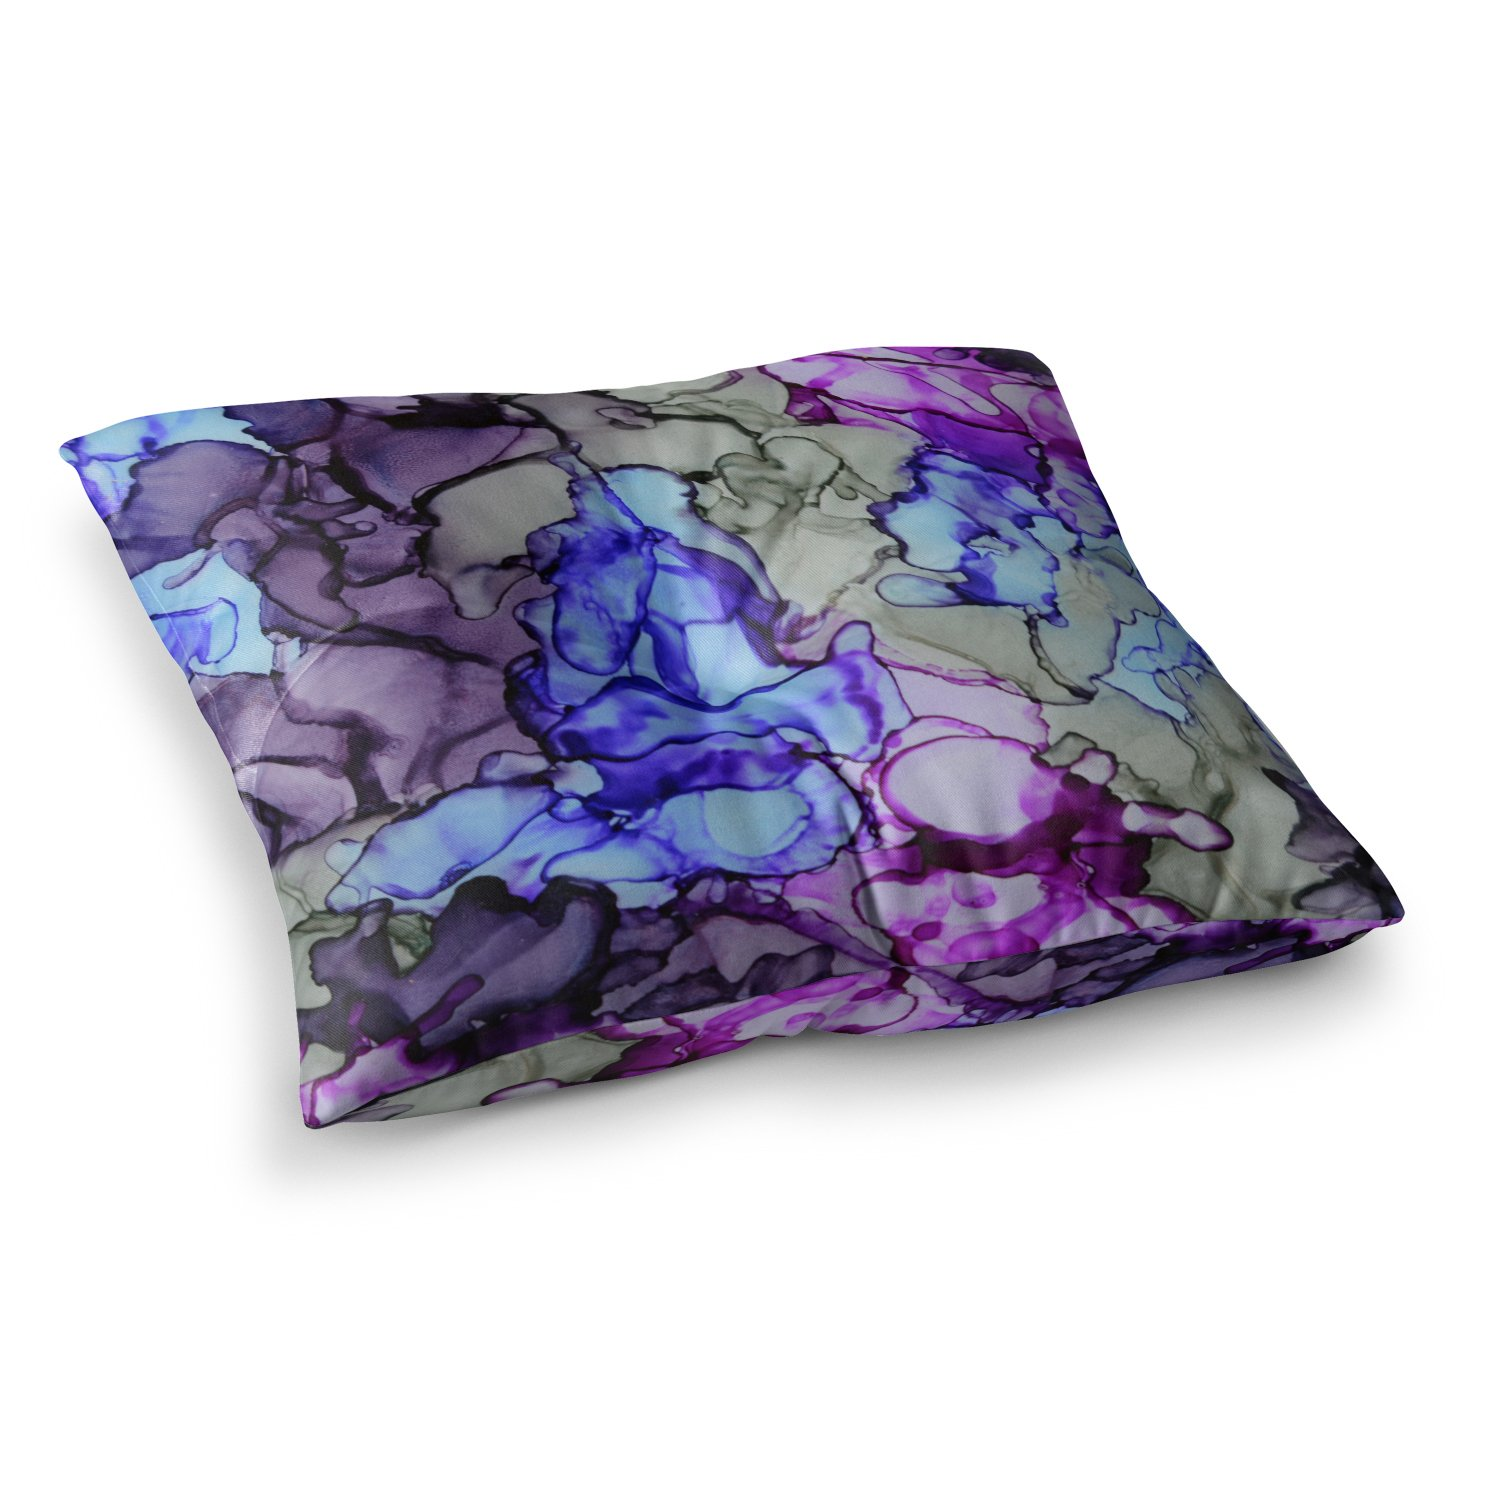 80 by 60-Inch Kess InHouse Claire Day Violet Blue Purple Fleece Throw Blanket 80 X 60